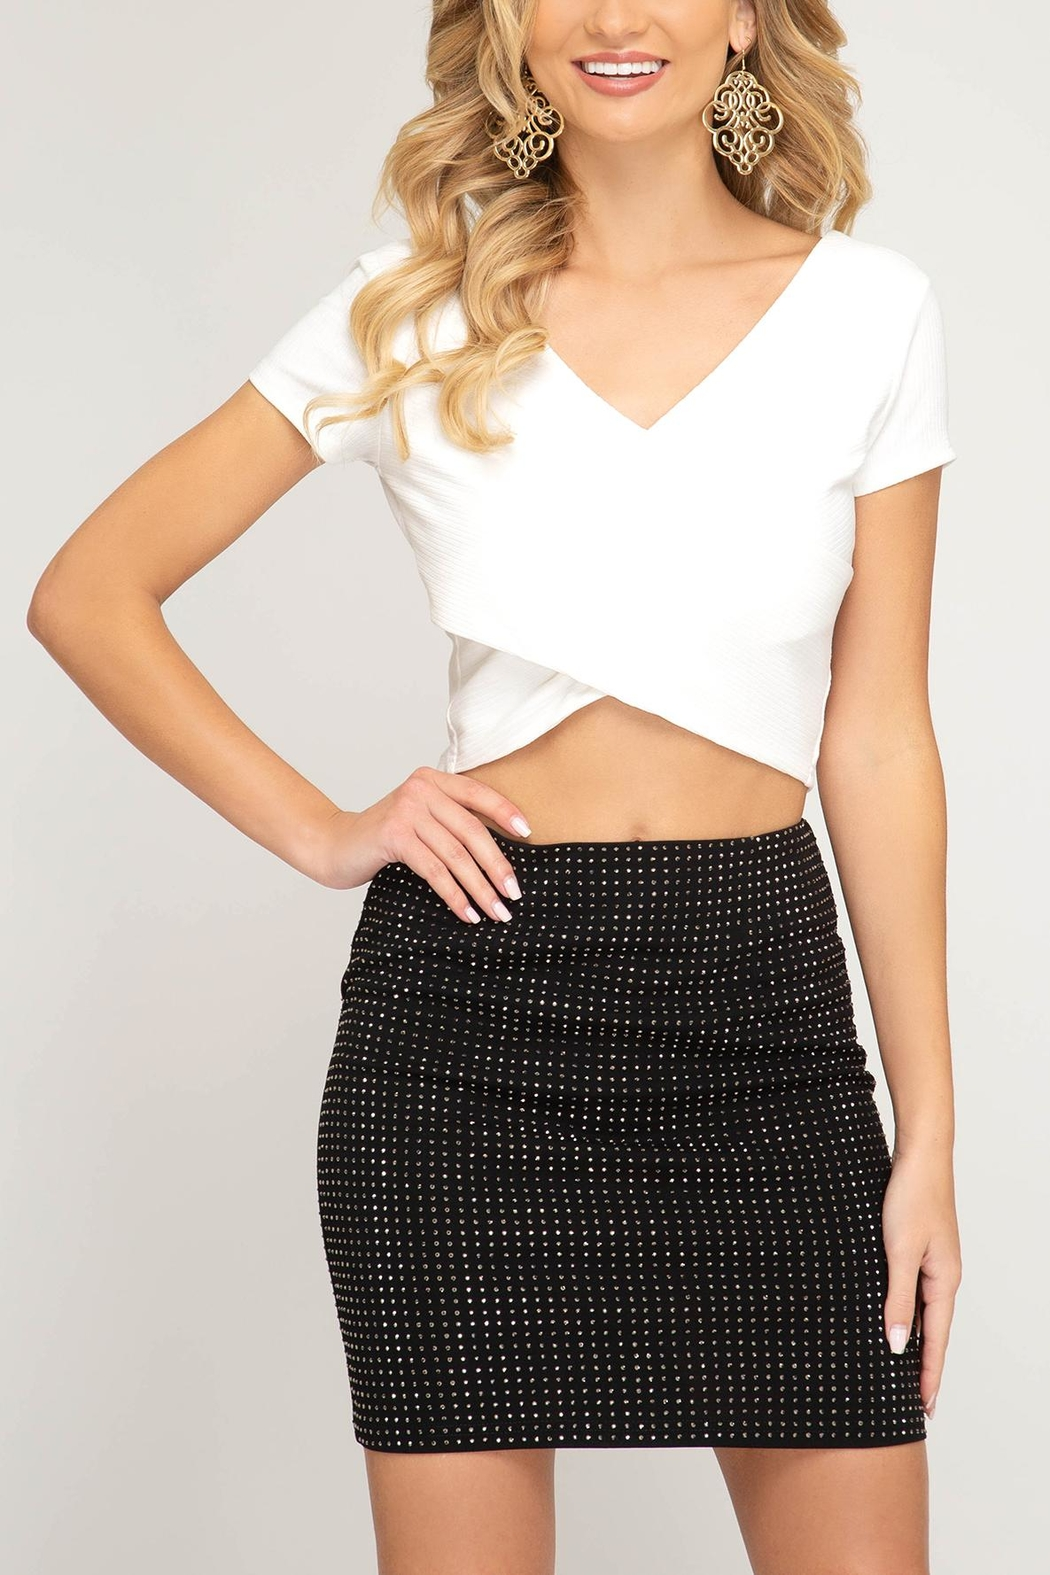 6eb5dbbbc Unknown Factory Rhinestone Mini Skirt from Raleigh by Athleisure ...